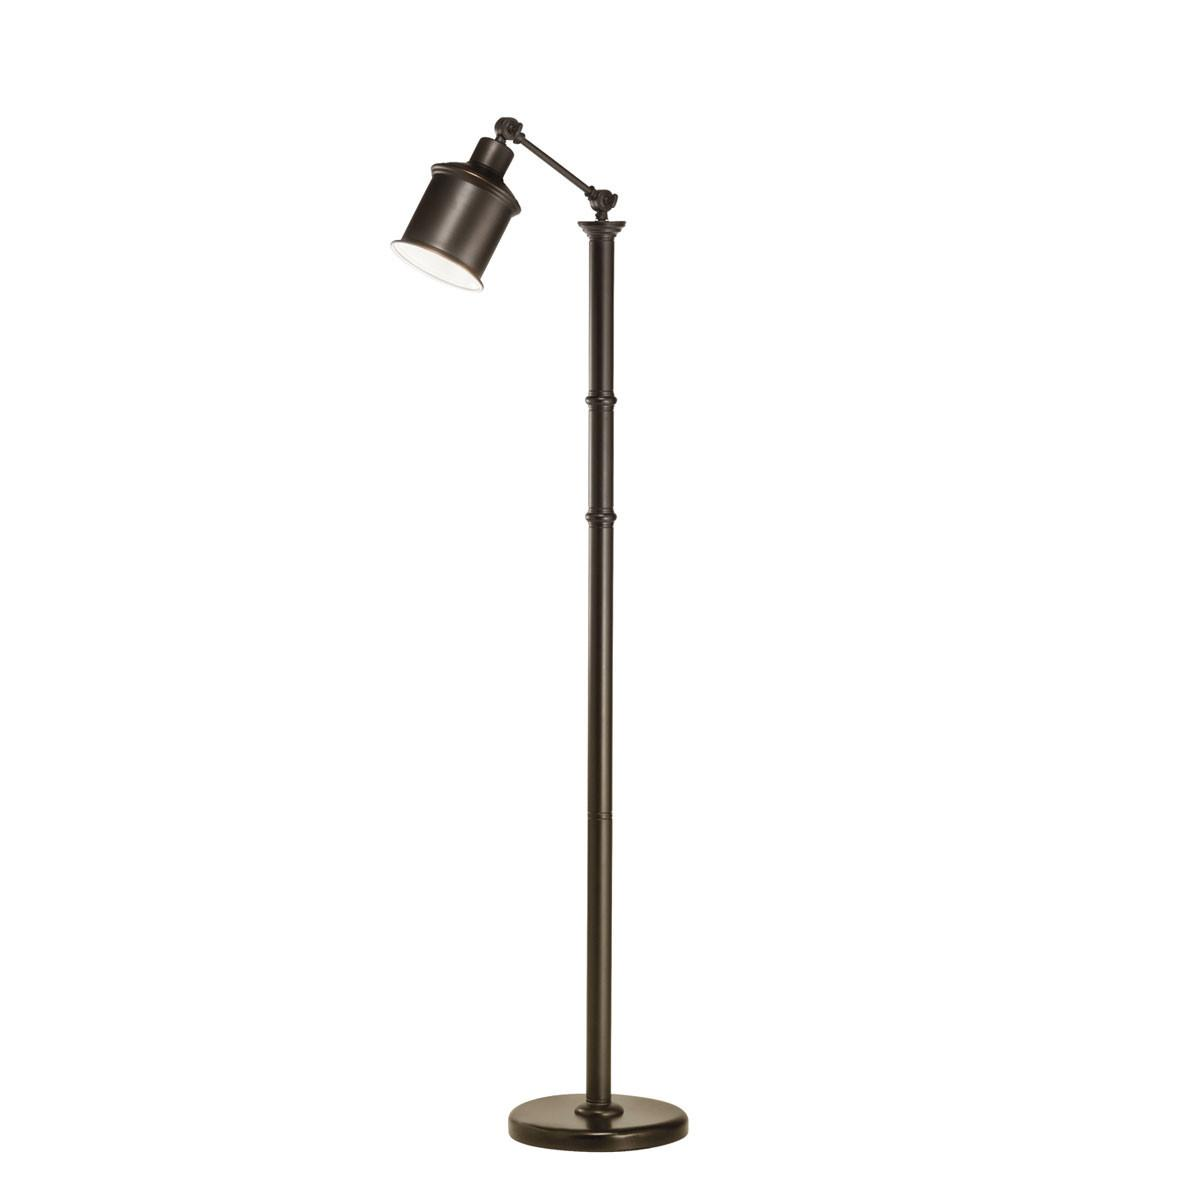 Homeofficedecoration Contemporary Floor Lamps Reading